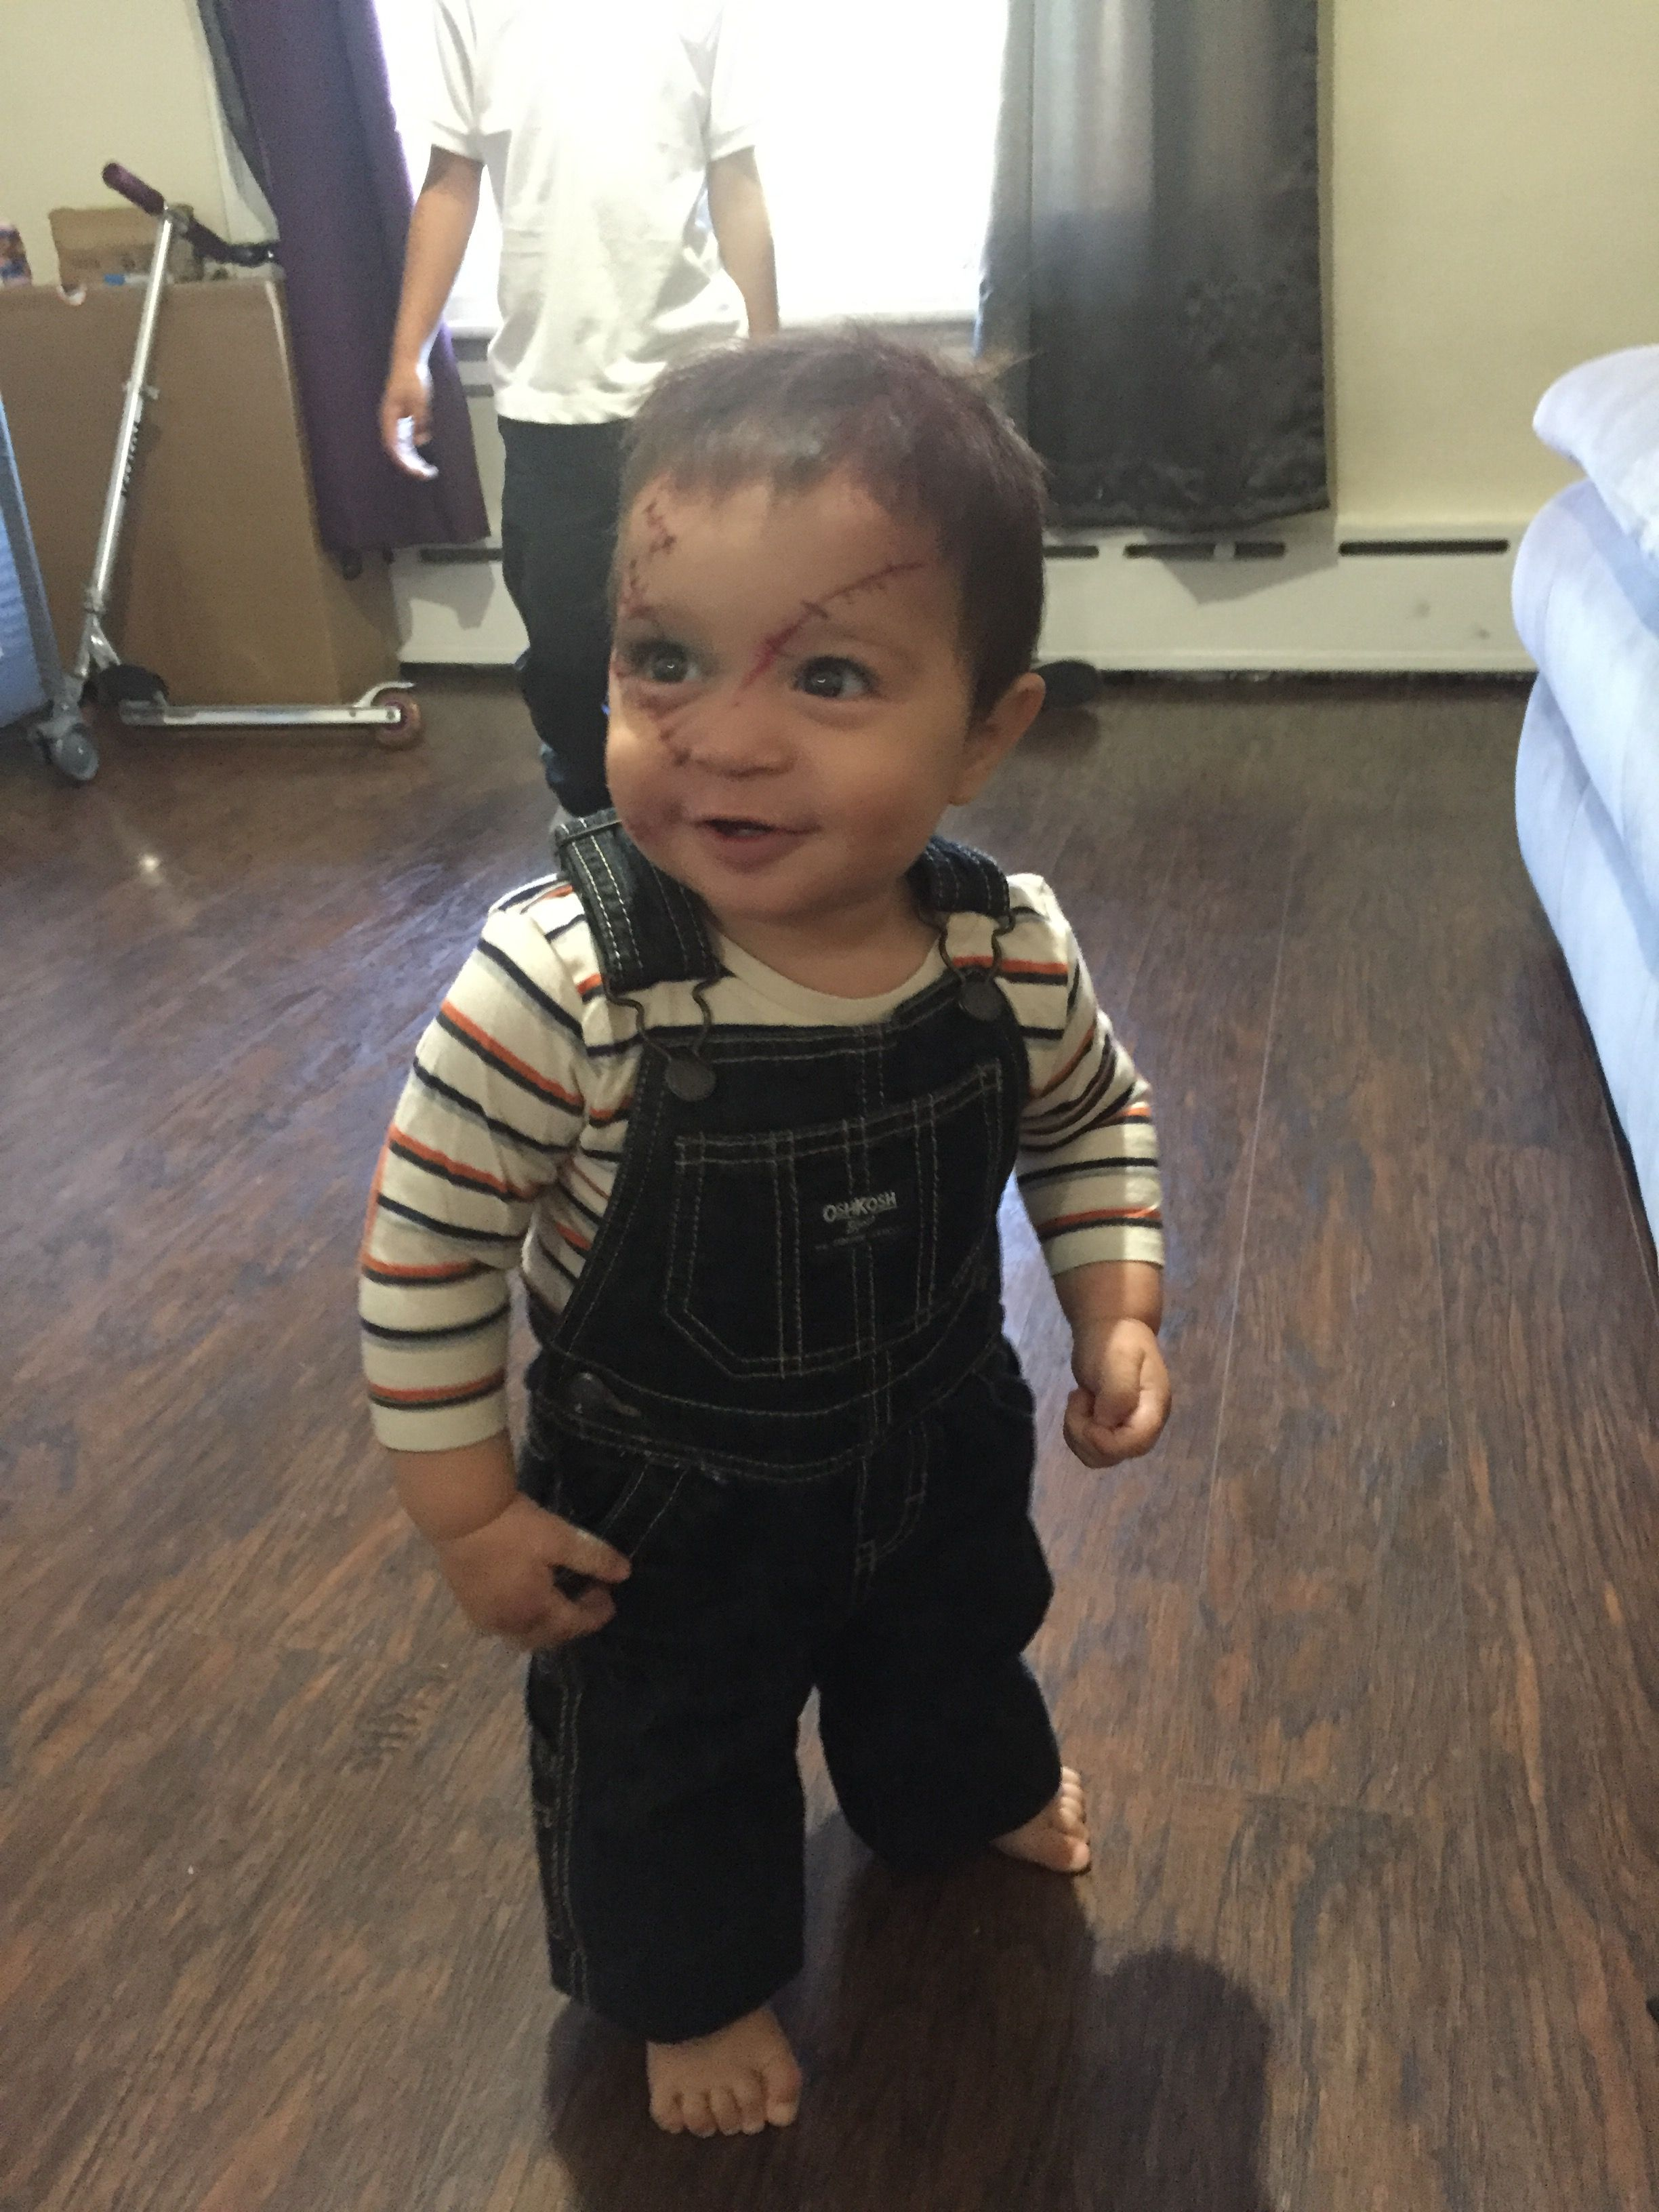 Diy chucky baby costume Baby costumes, Costumes, Fashion